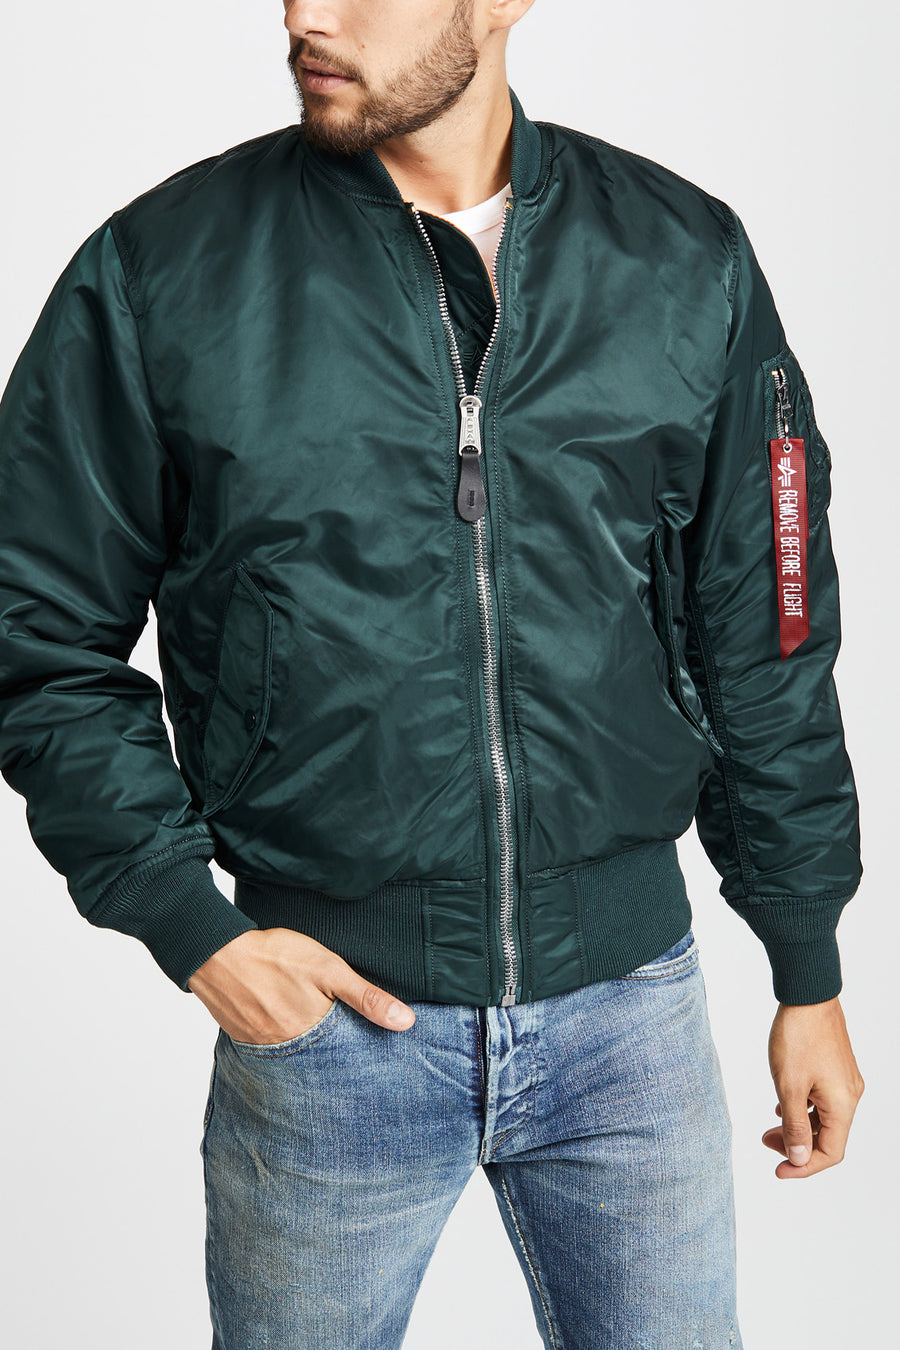 MA-1 Down Flight Jacket - Patrol Green - Pavilion